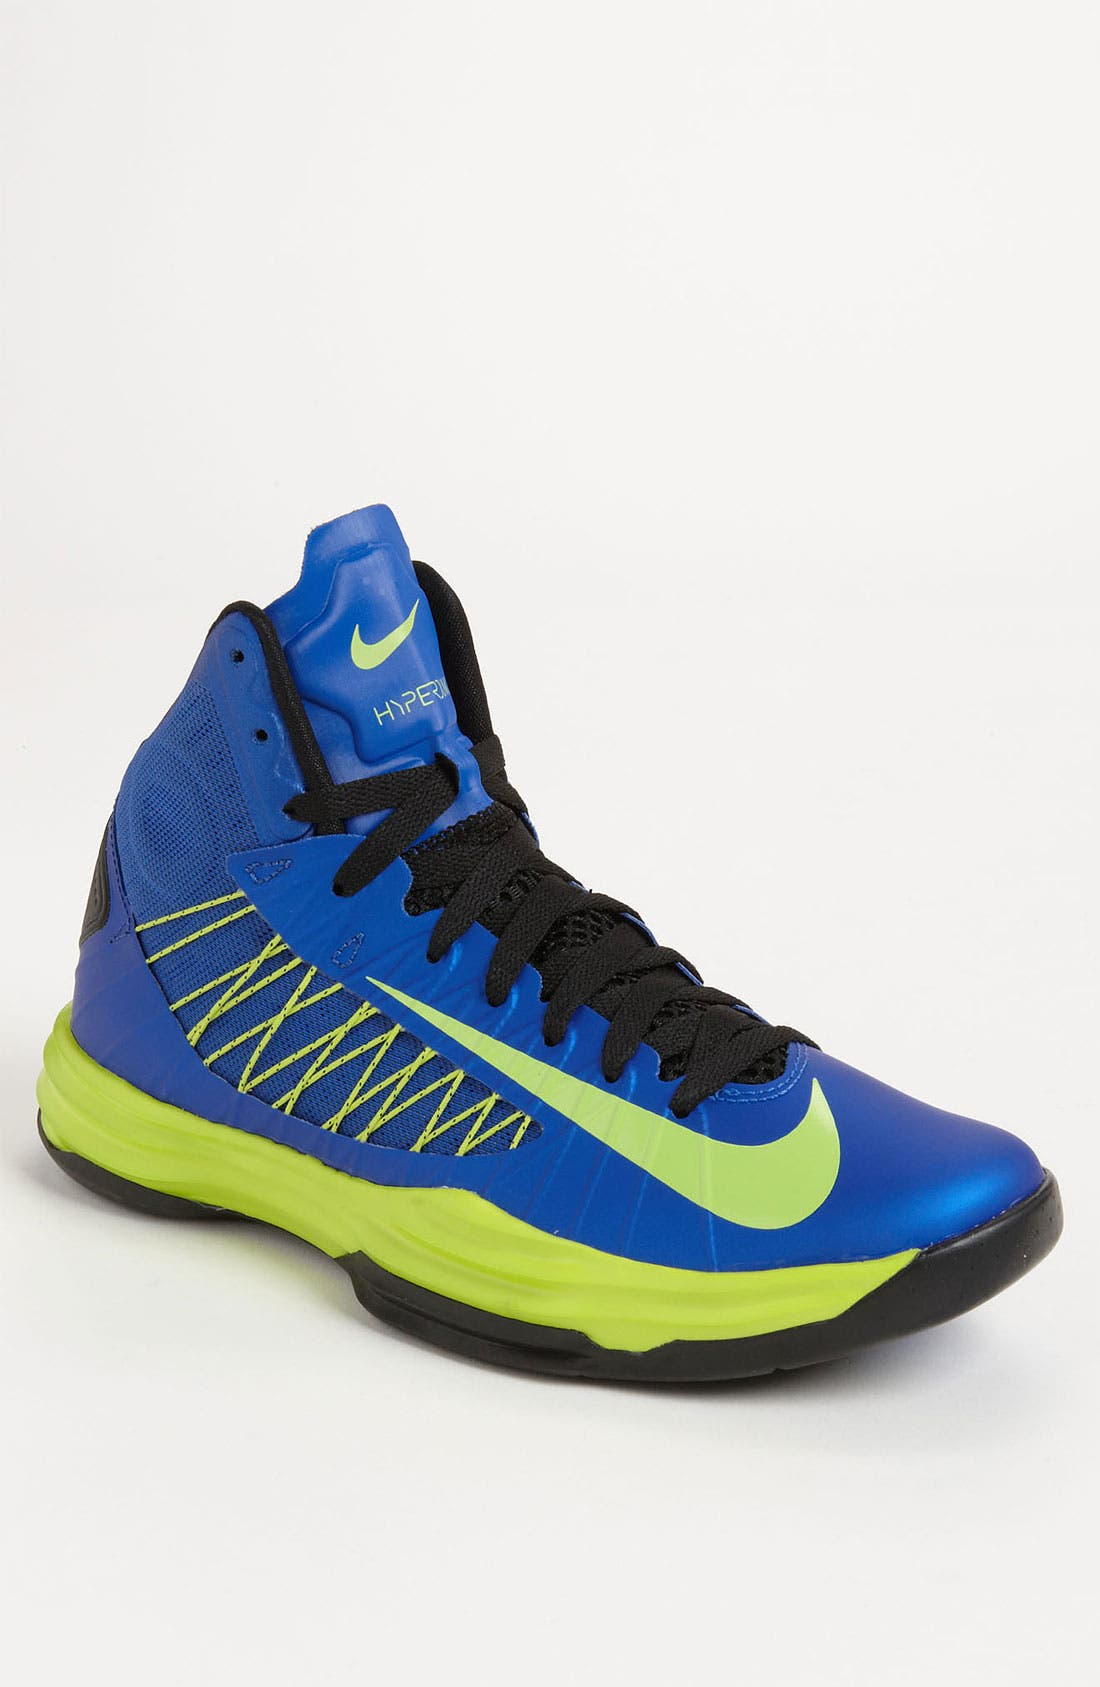 Alternate Image 1 Selected - Nike 'Hyperdunk' Basketball Shoe (Men)